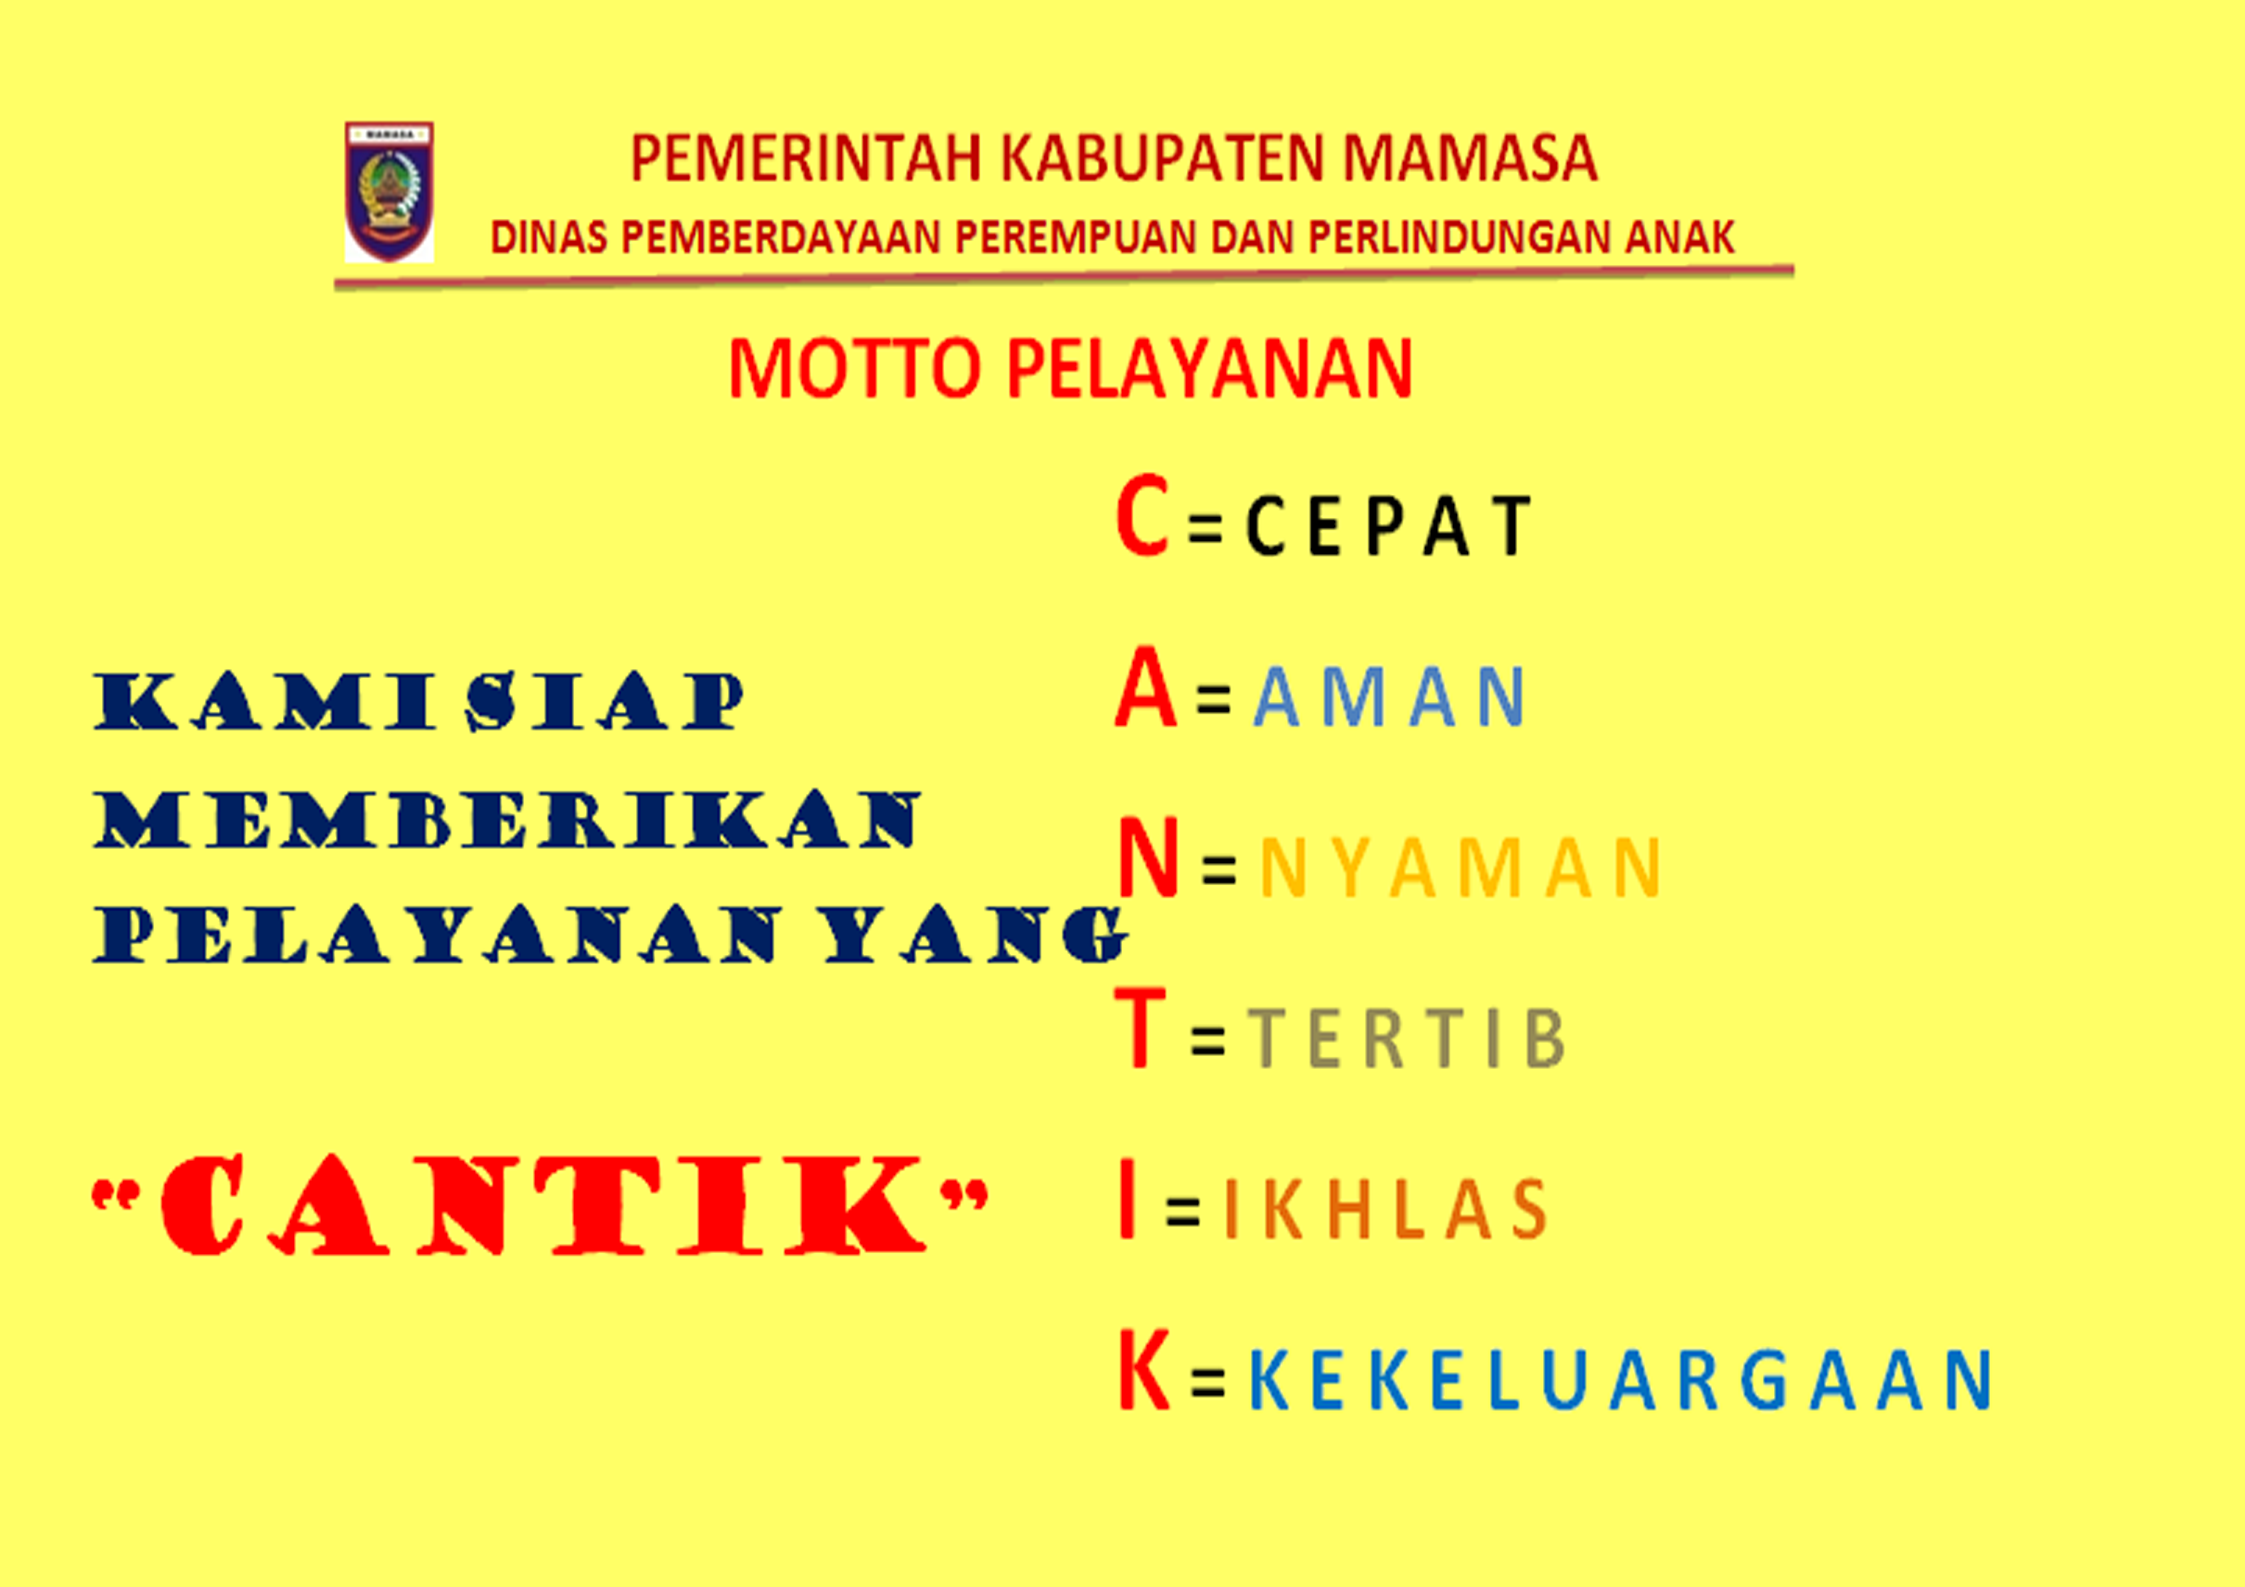 http://pd3a.mamasakab.go.id/index_files/vlb_images1/MOTTO%20PELAYANAN.png